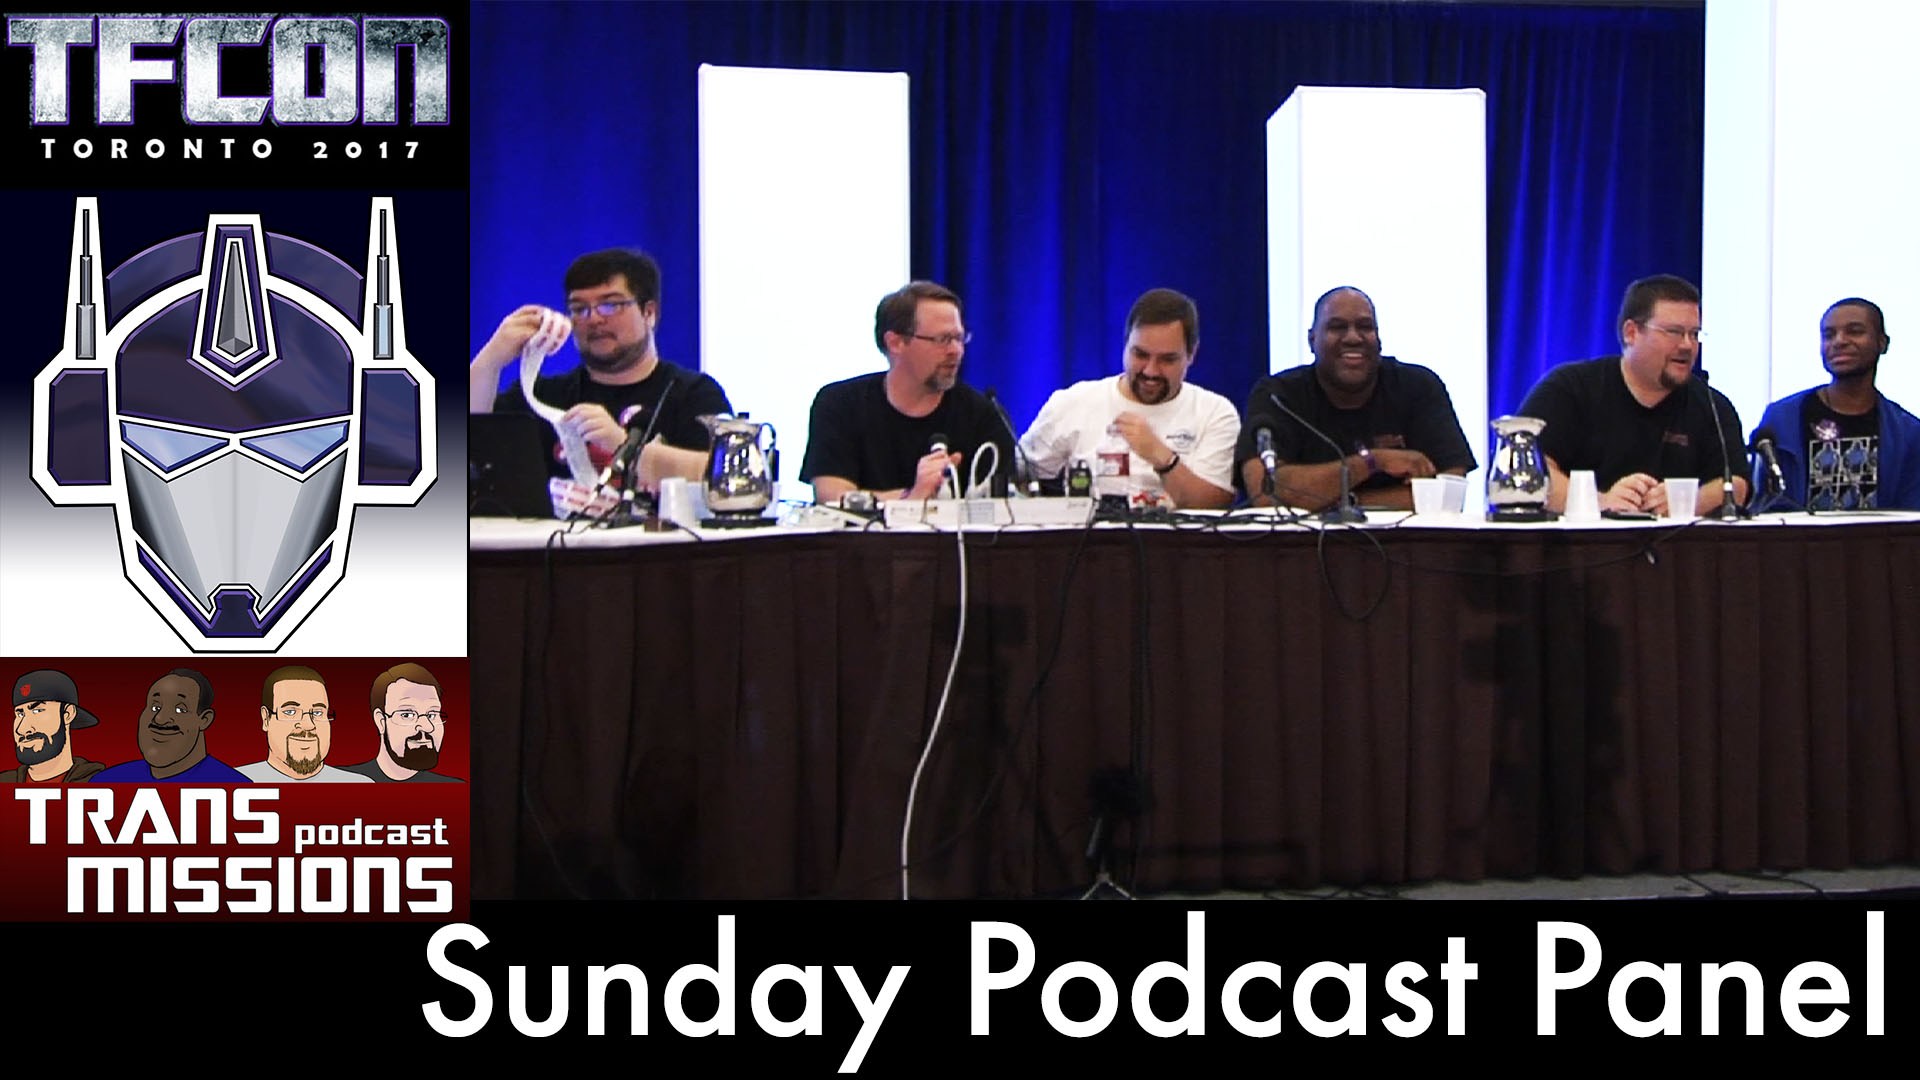 Round Table Podcast.Wtf Tfw Tfcon Roundtable Podcast Transformers News Tfw2005